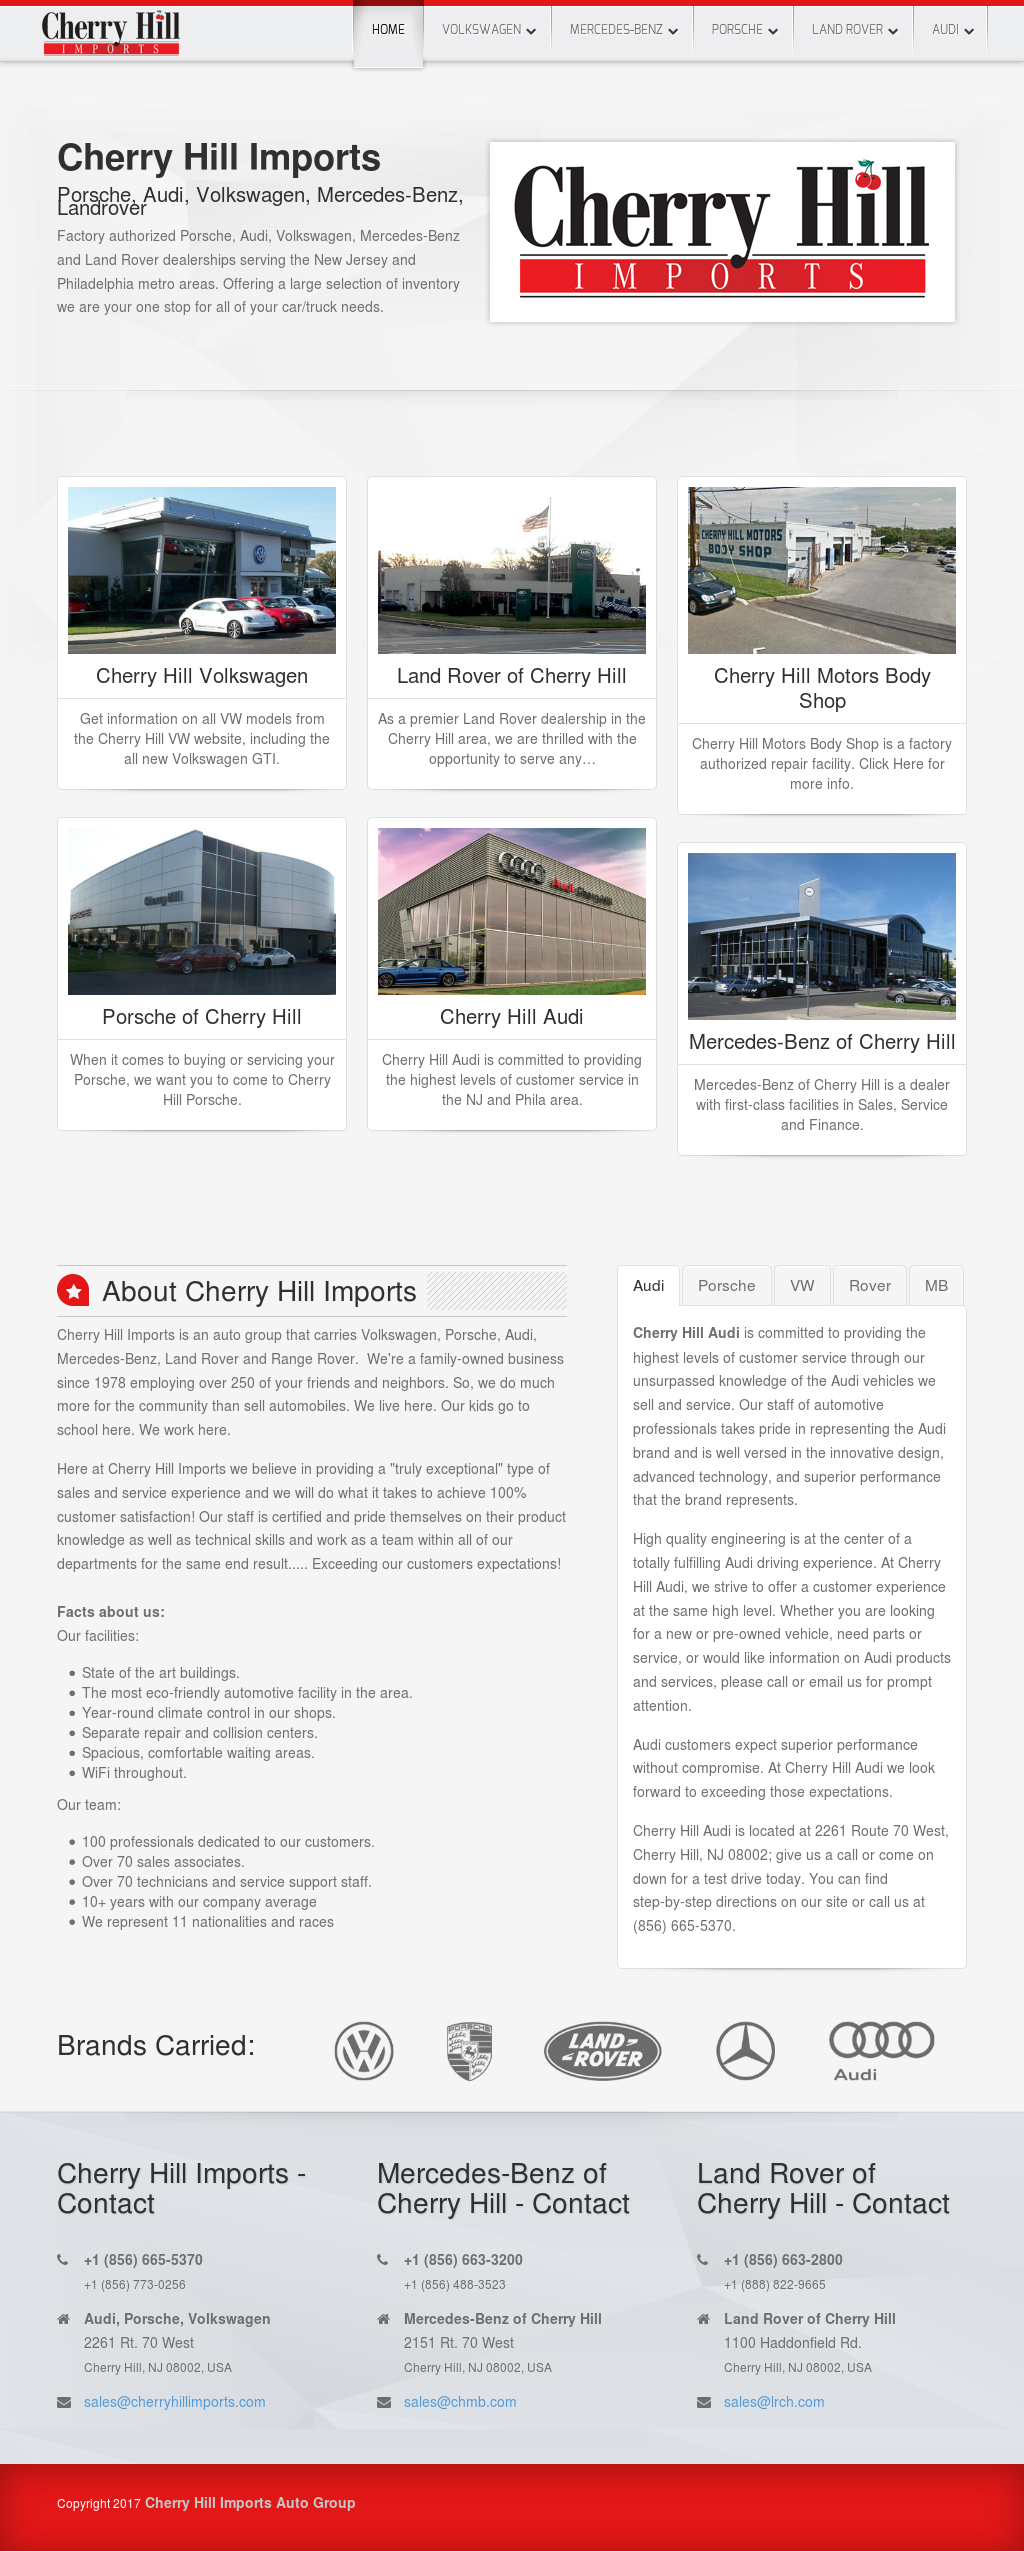 Cherry Hill Imports >> Cherry Hills Imports Competitors Revenue And Employees